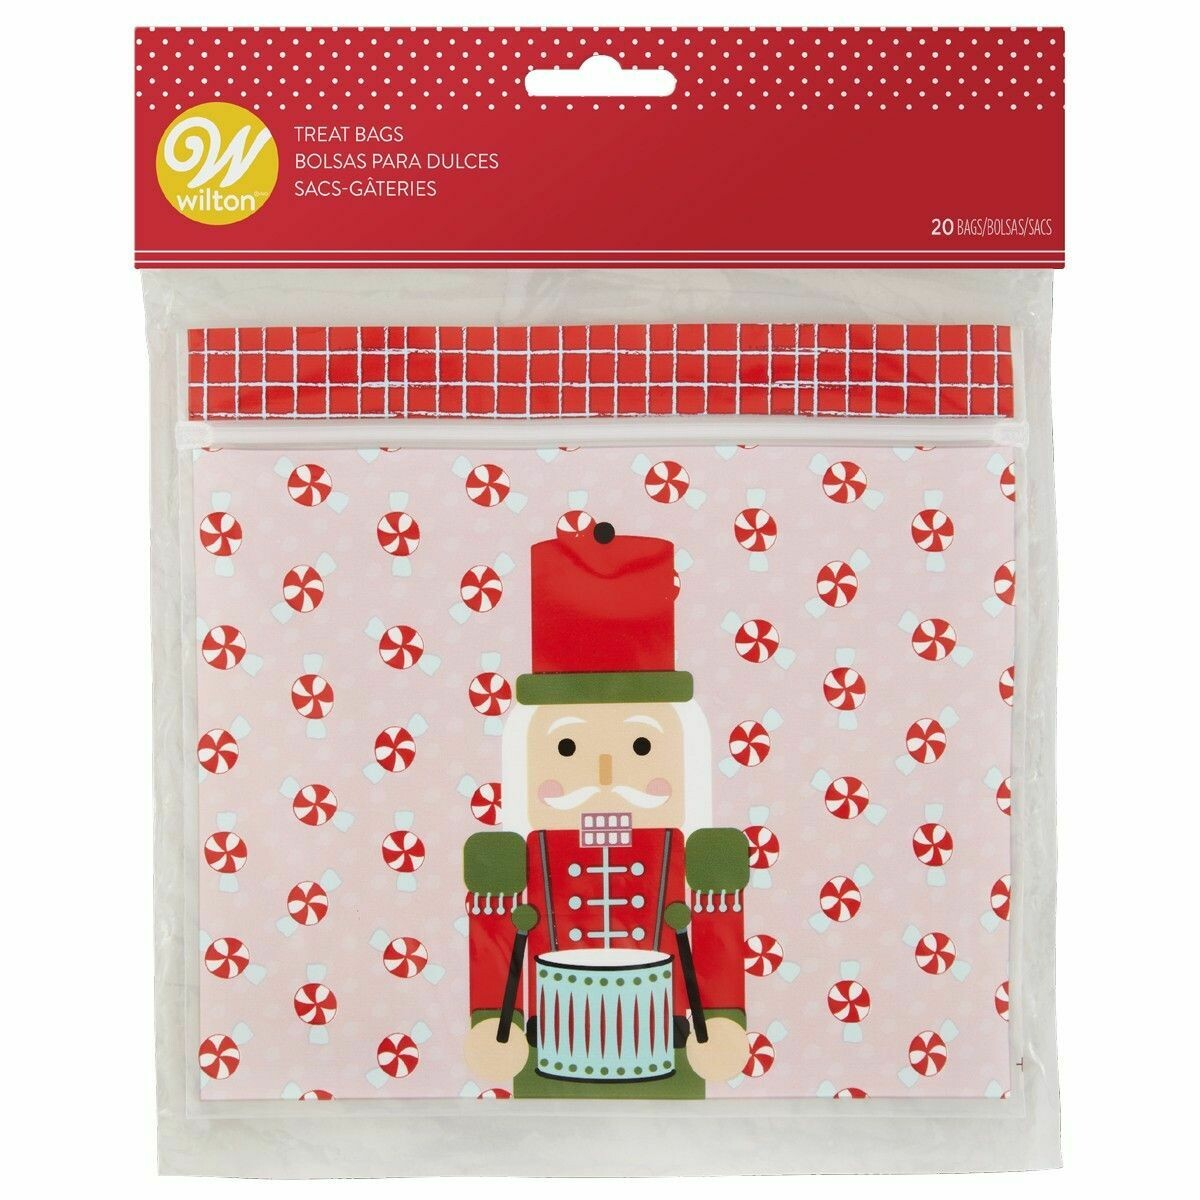 Wilton Christmas Resealable Treat Bags -NUTCRACKER -Pack of 20 - Σακουλάκια για Γλυκά Καρυοθραύστης